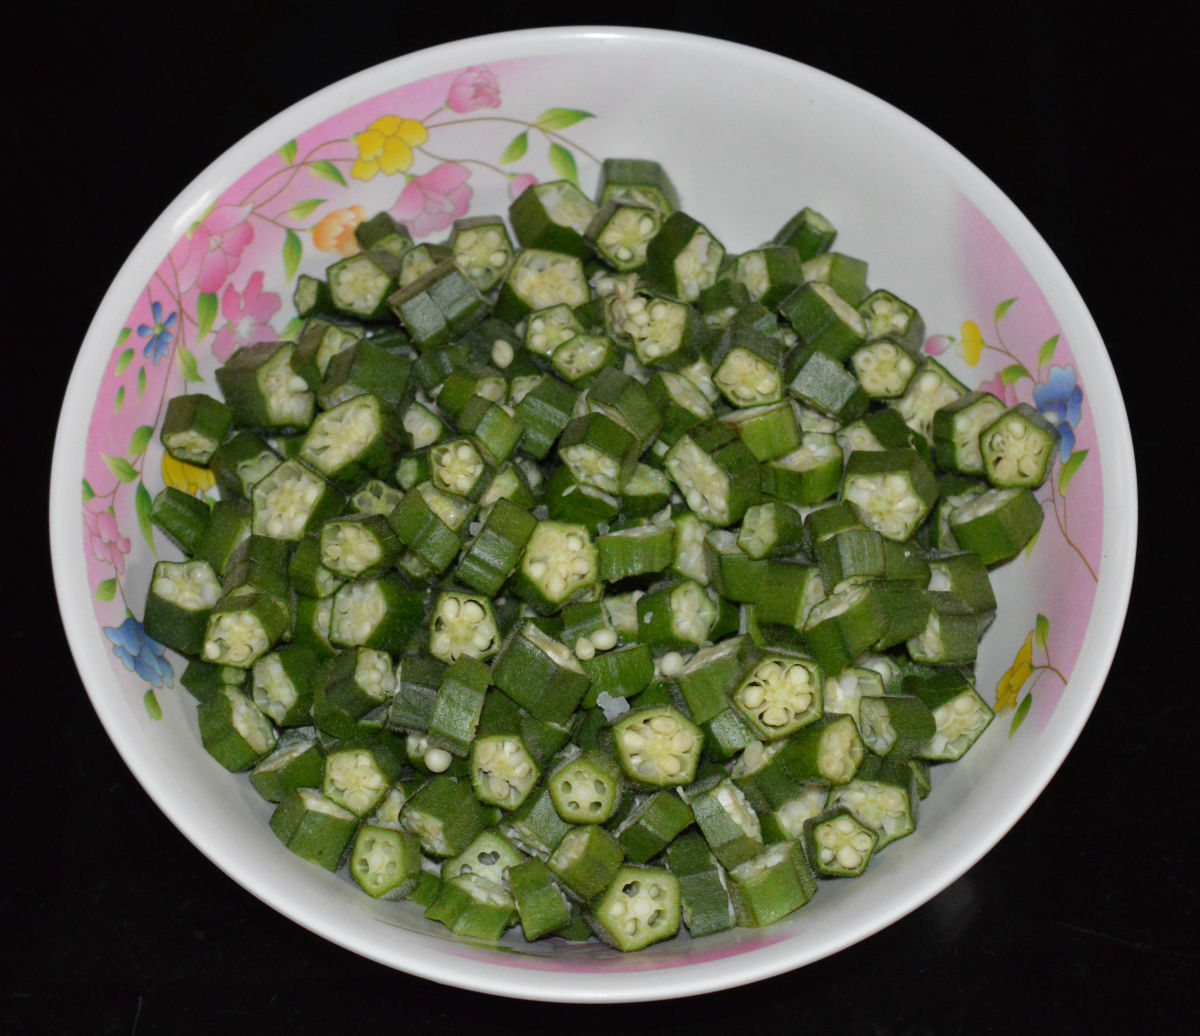 Step 1: Make thin slices of okra. Place them in a mixing bowl.